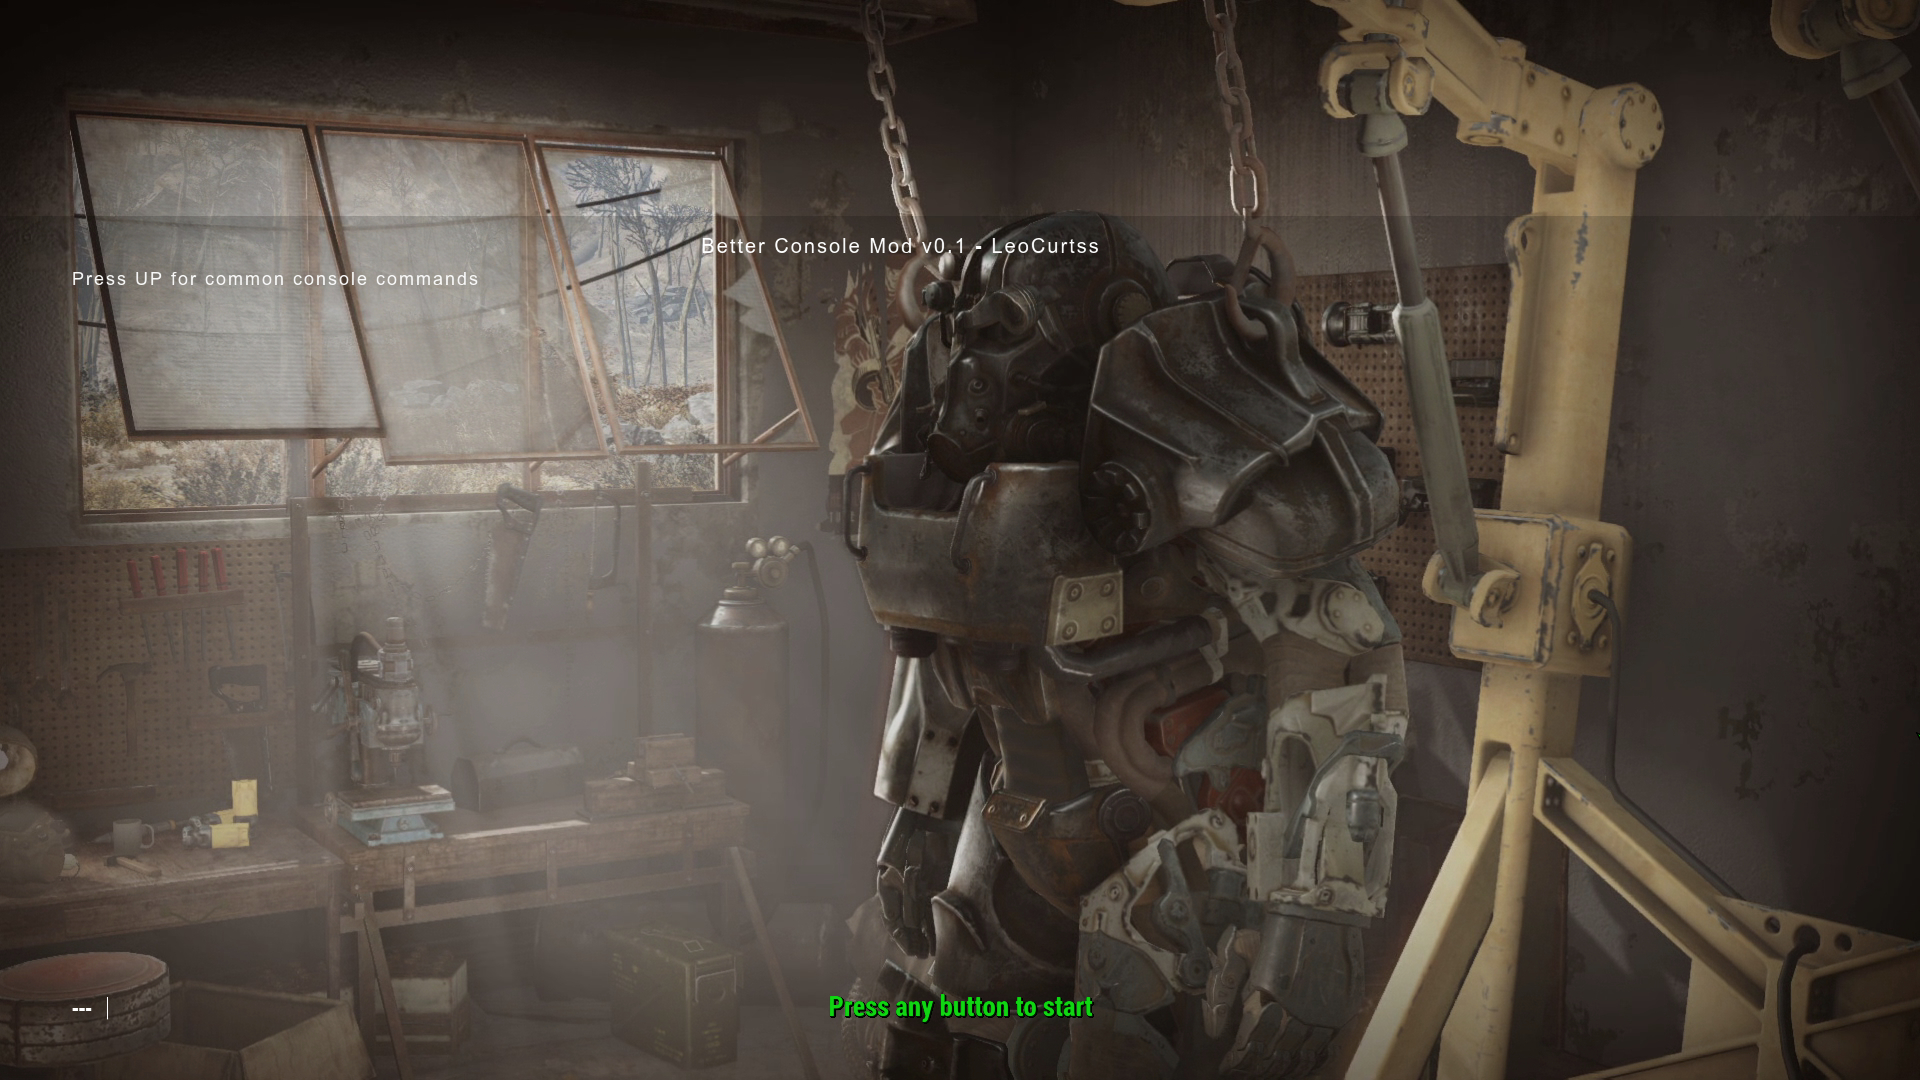 Fallout 4 better console fallout 4 fo4 mods - What consoles will fallout 4 be on ...